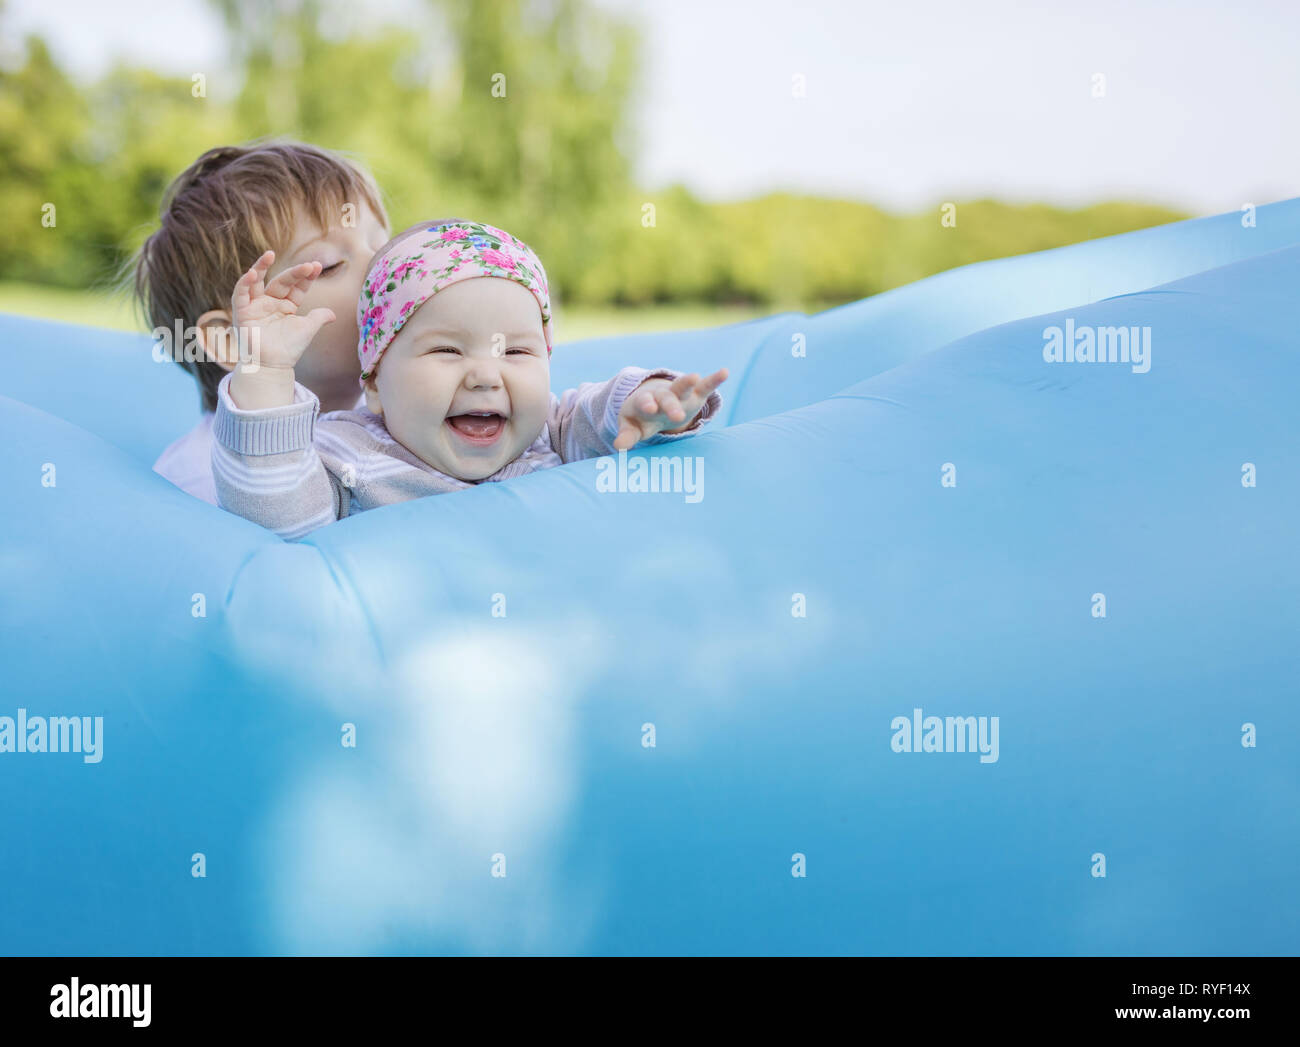 Siblings playing on inflatable sofa outdoors. Baby girl and older brother having fun together in park. Stock Photo